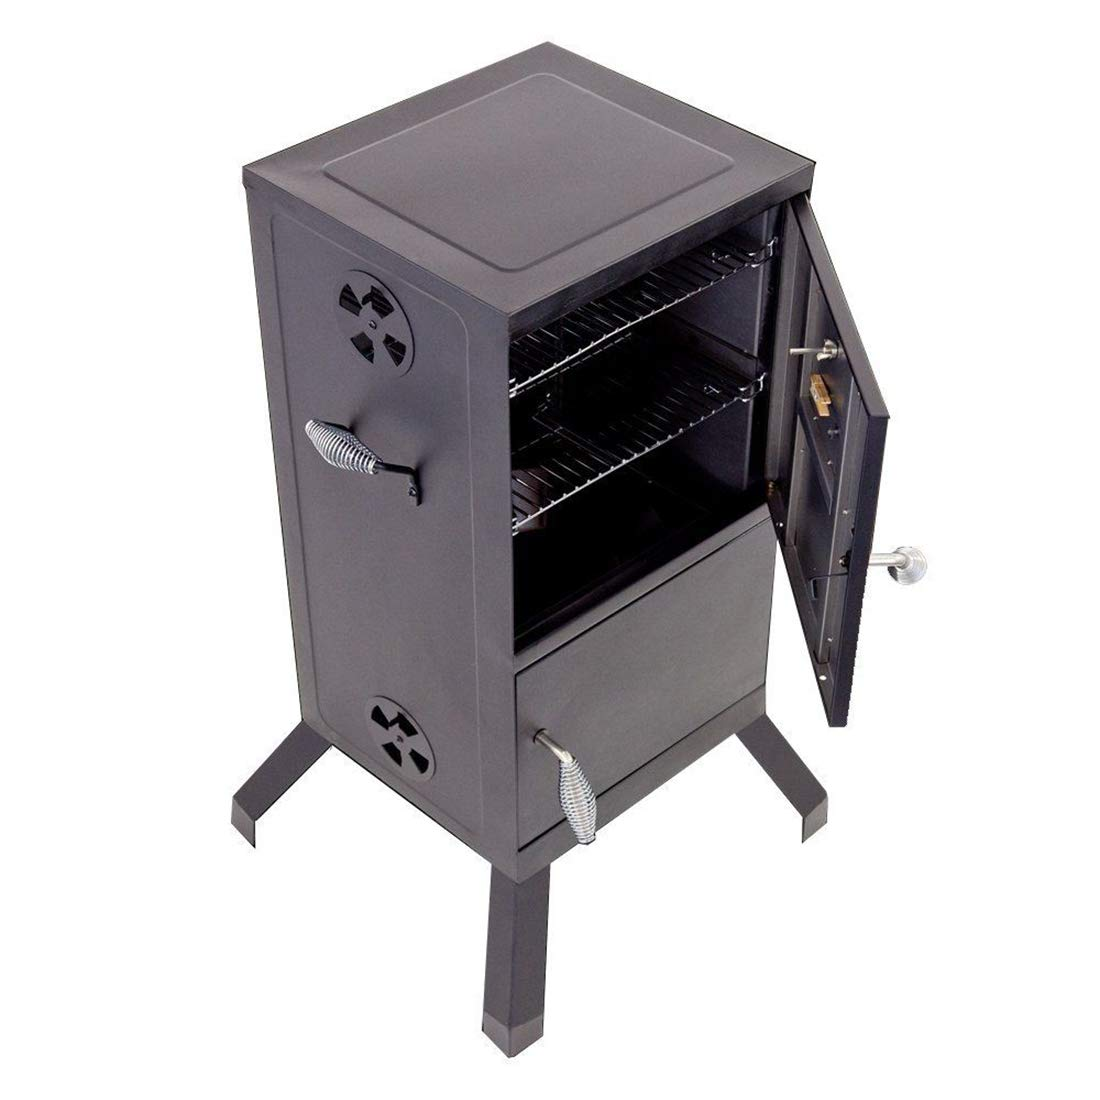 FossExpress New Grill Cooker [Vertical Steel Chamber 21.5 x 20.8 x 39 inches] - Charcoal Smoker - Work Great for BBQ Cooking - Outdoor, Patio Backyard - Black by FossExpress (Image #4)